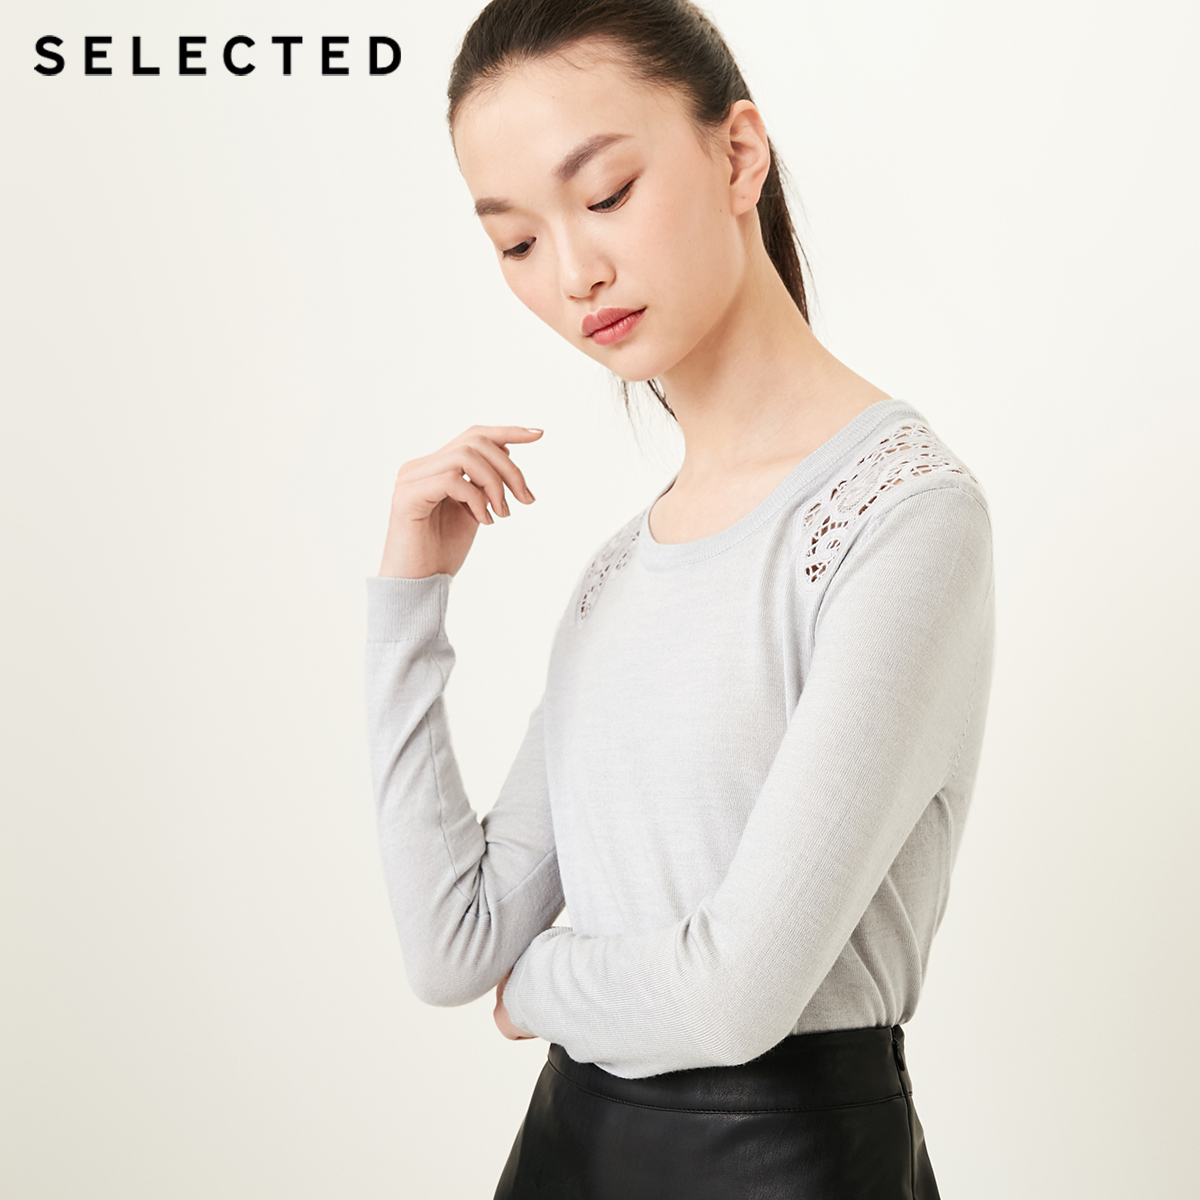 SELECTED includes wool knitted flowers leisure knitted sweater sweater S 418124501